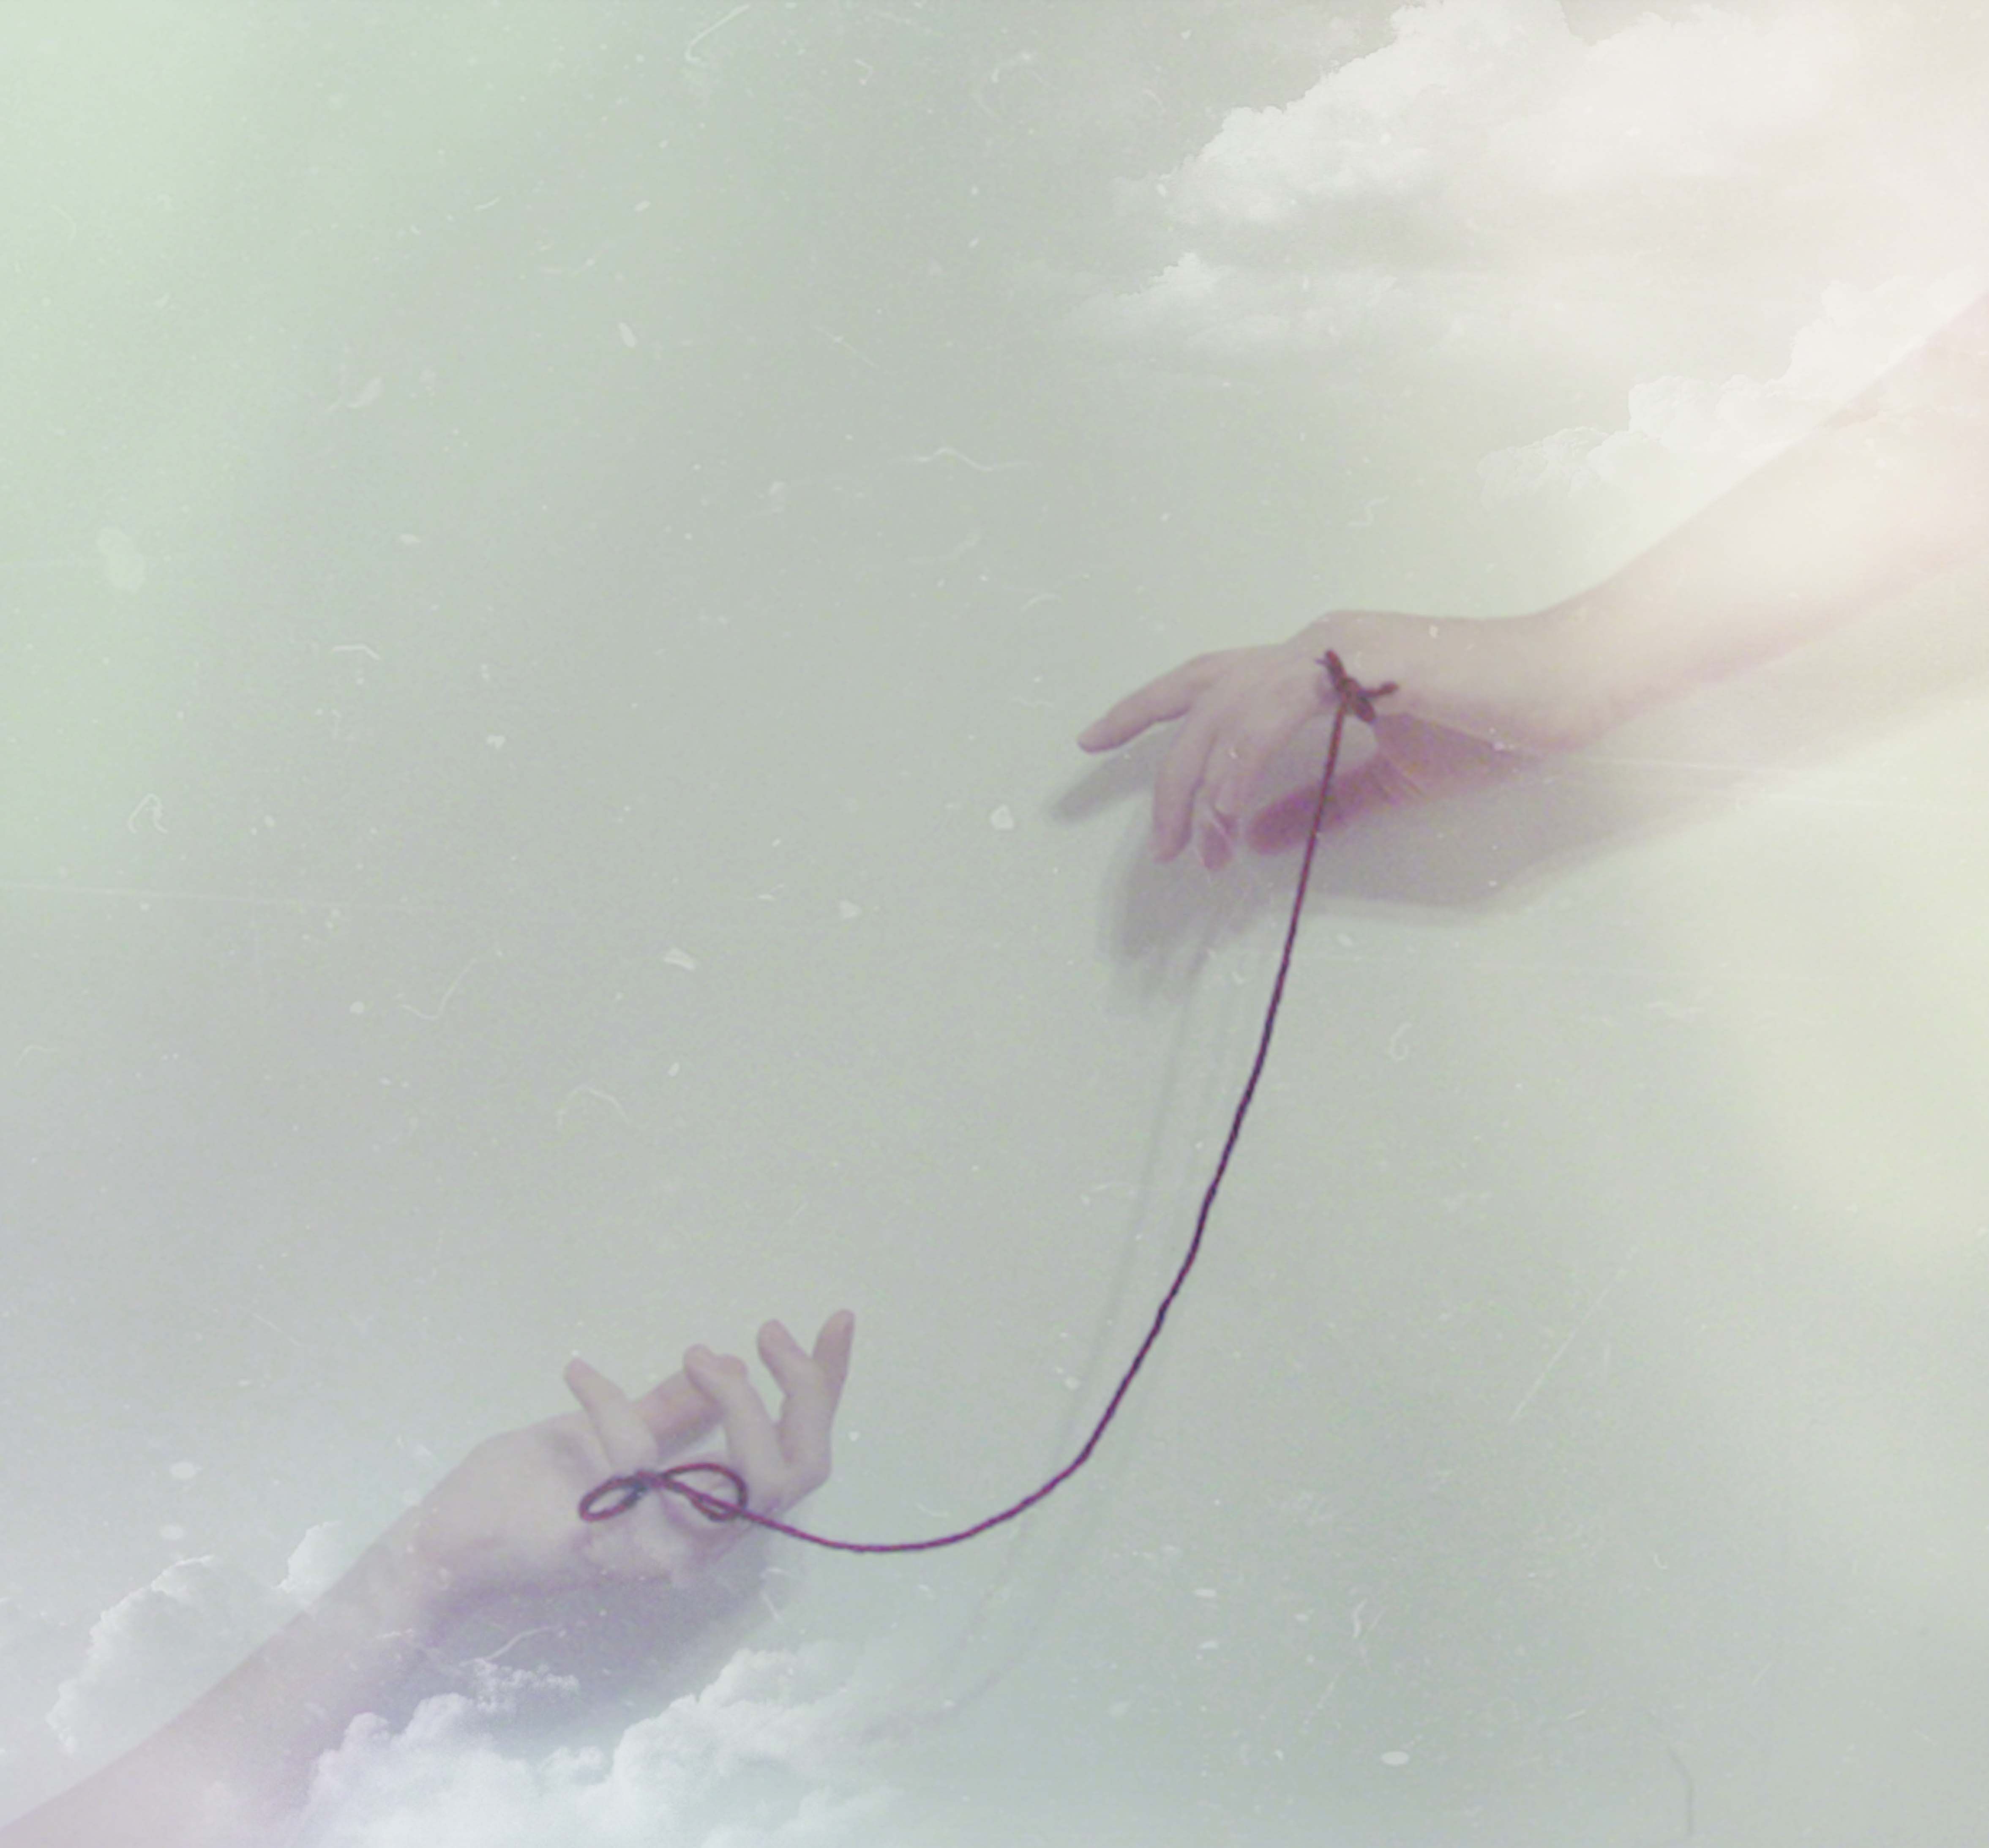 red_string_of_fate_by_nile_can_too-d4m28g7.jpg